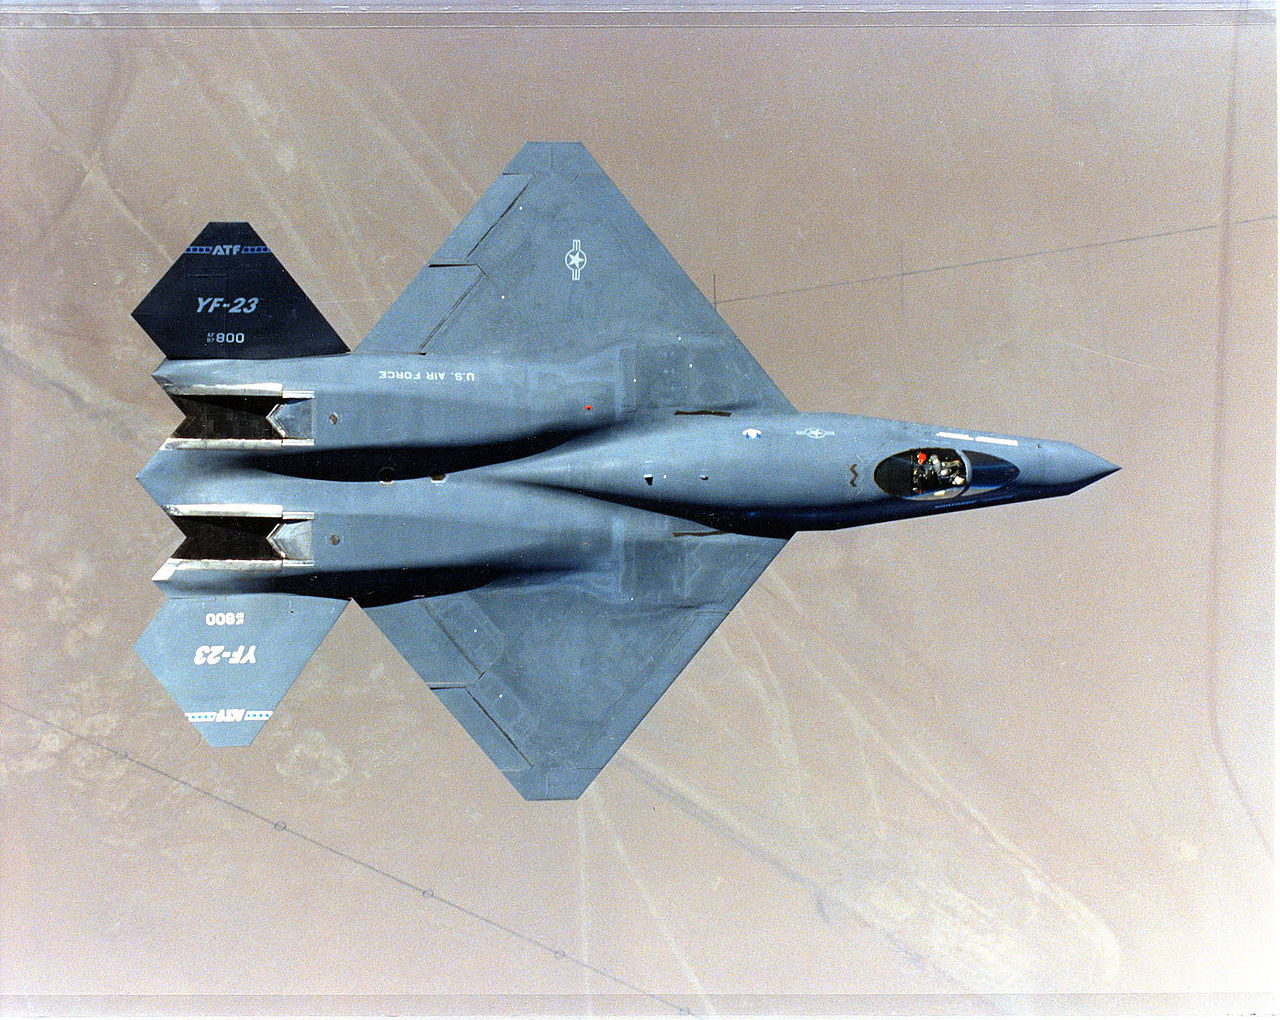 Northrop YF-23 Black Widow II vu de dessus